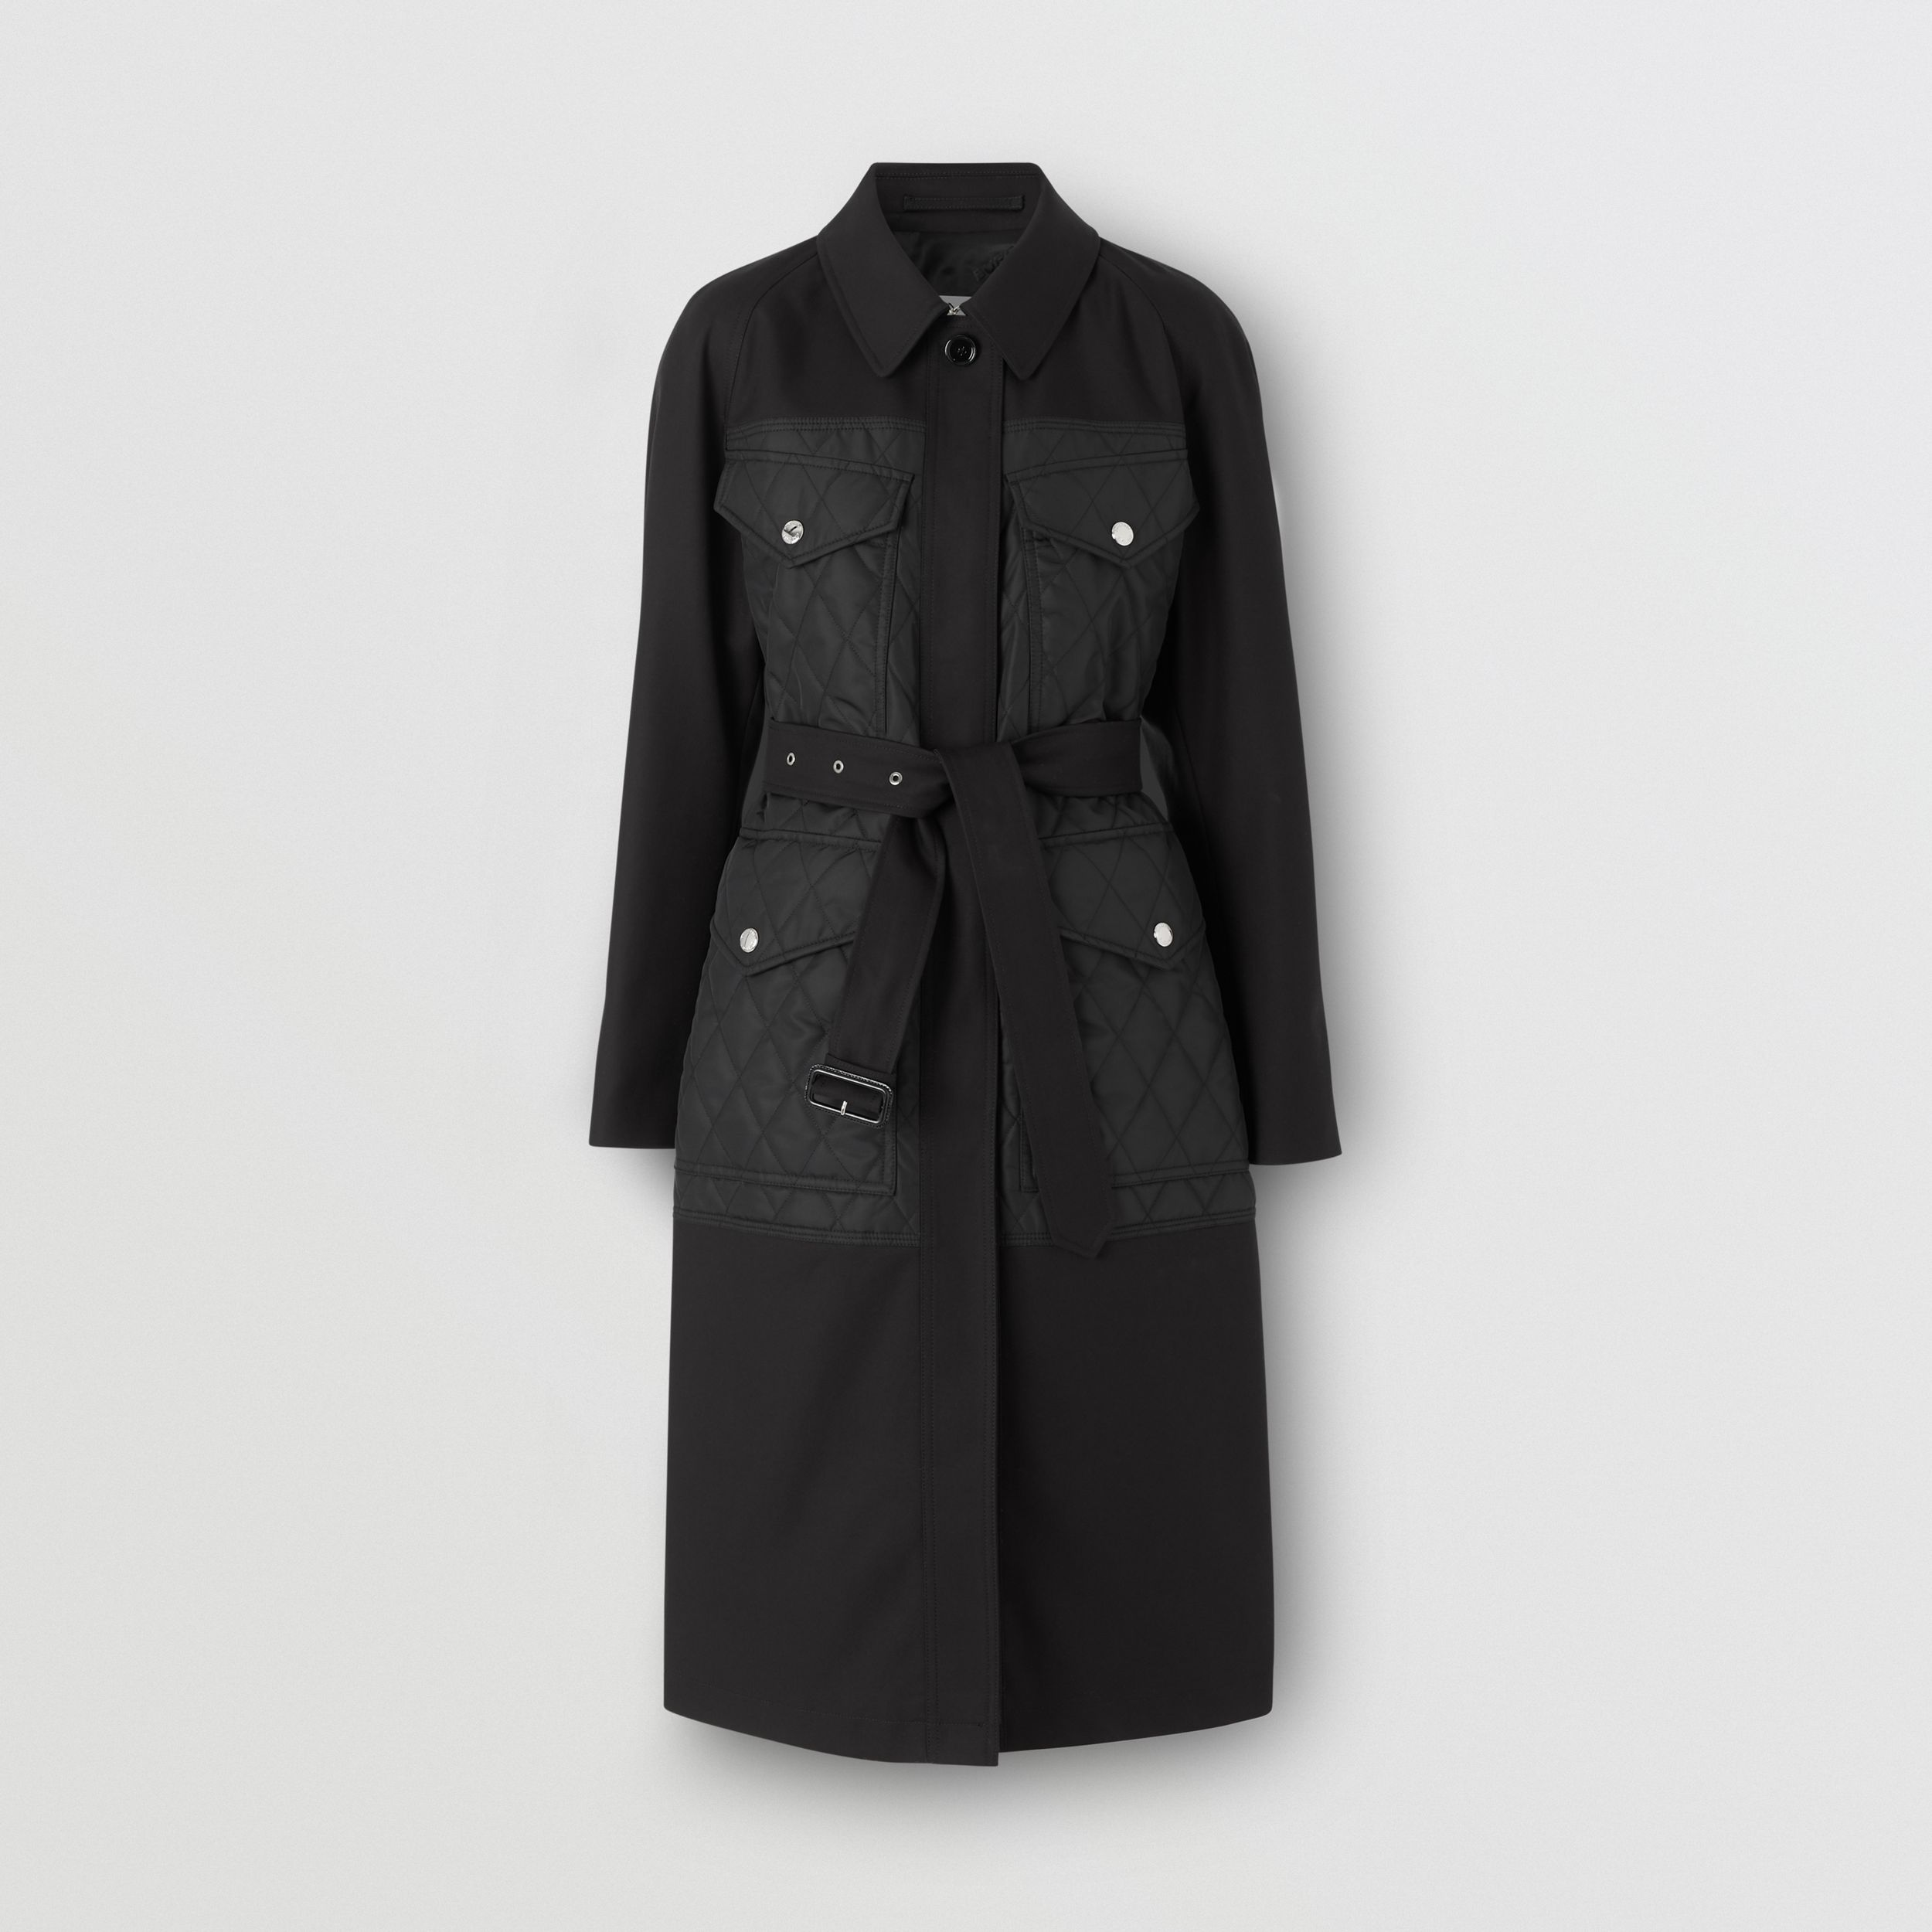 Diamond Quilted Panel Cotton Gabardine Car Coat in Black - Women | Burberry Canada - 4